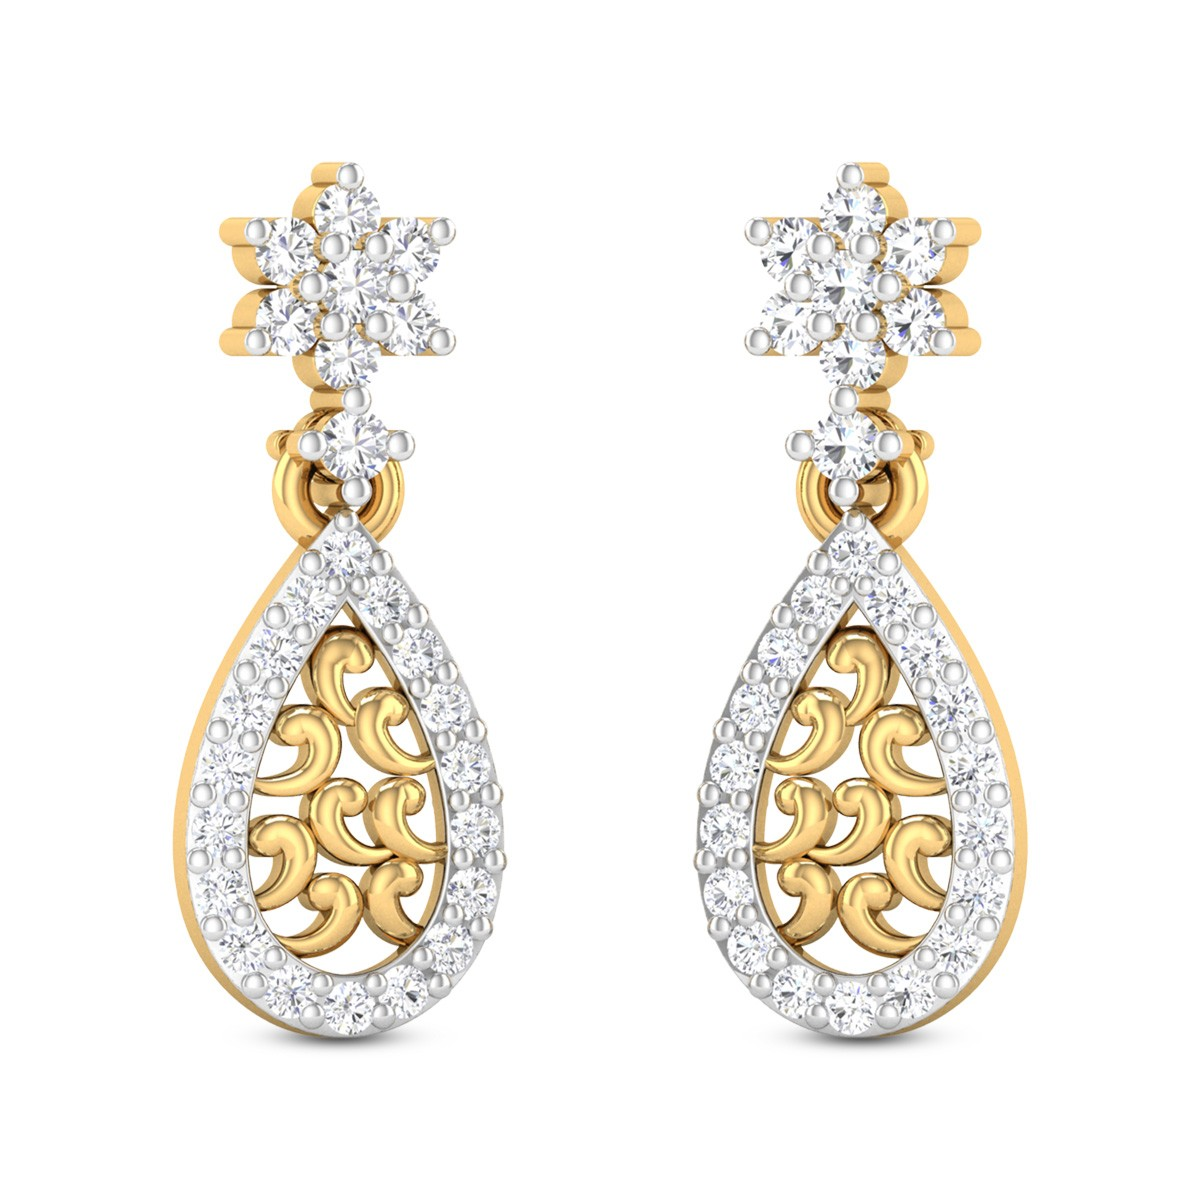 Iliane Diamond Earrings